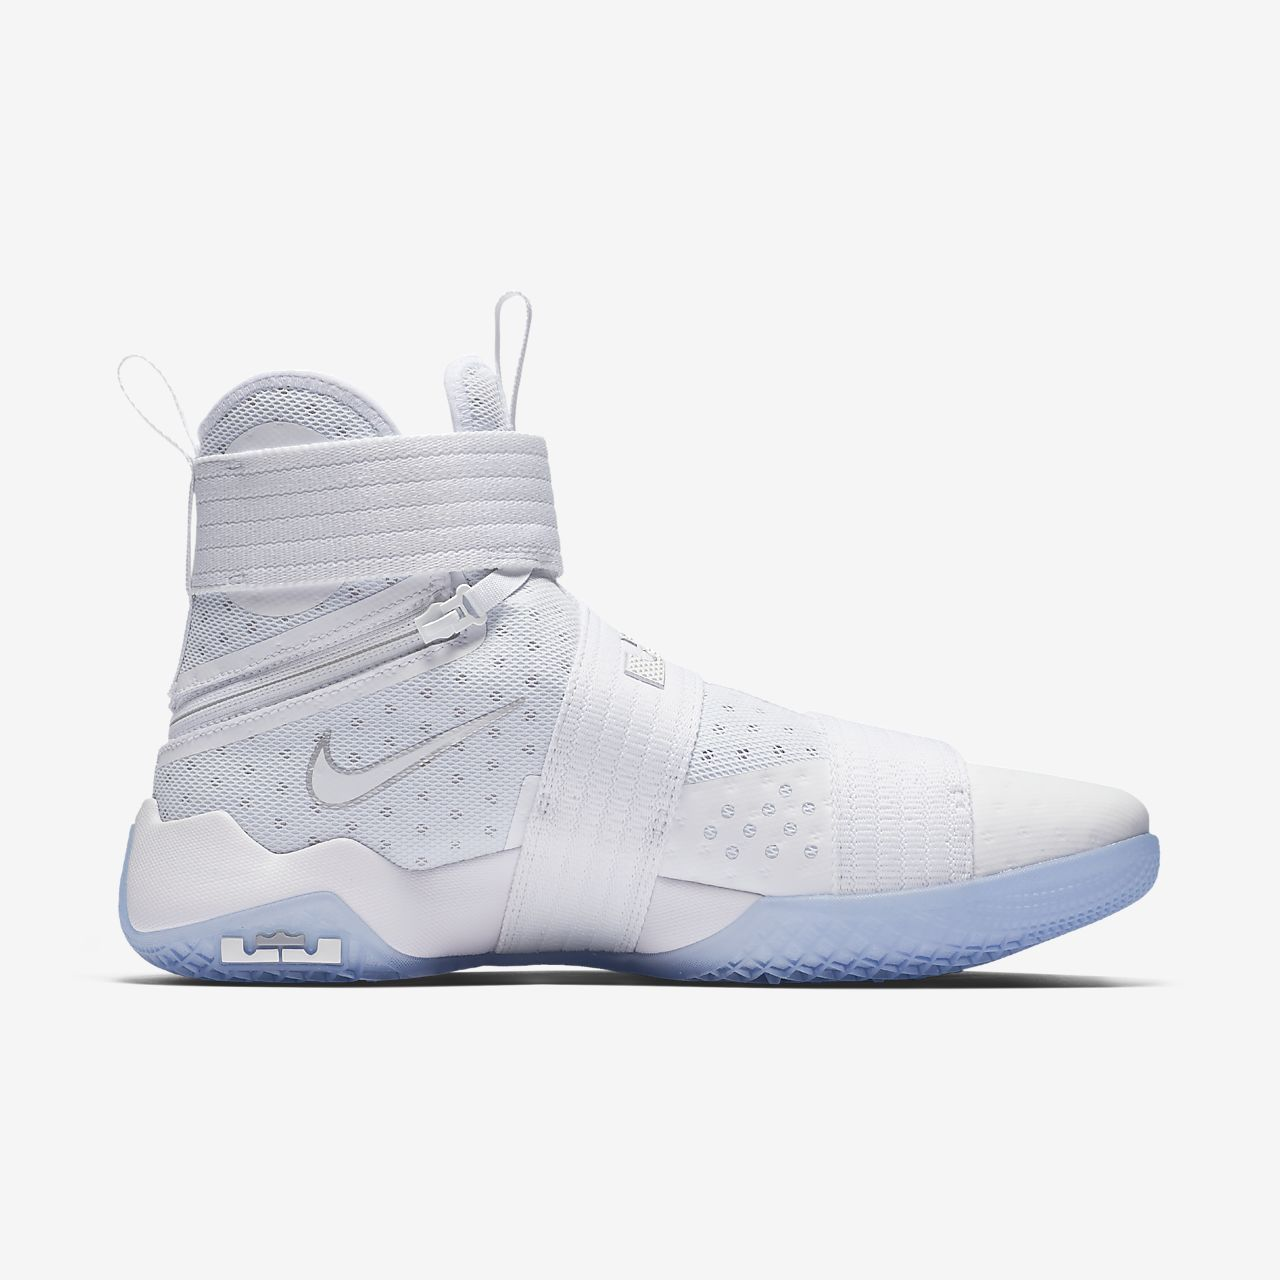 flyknit for women nike lebron james shoes for kids